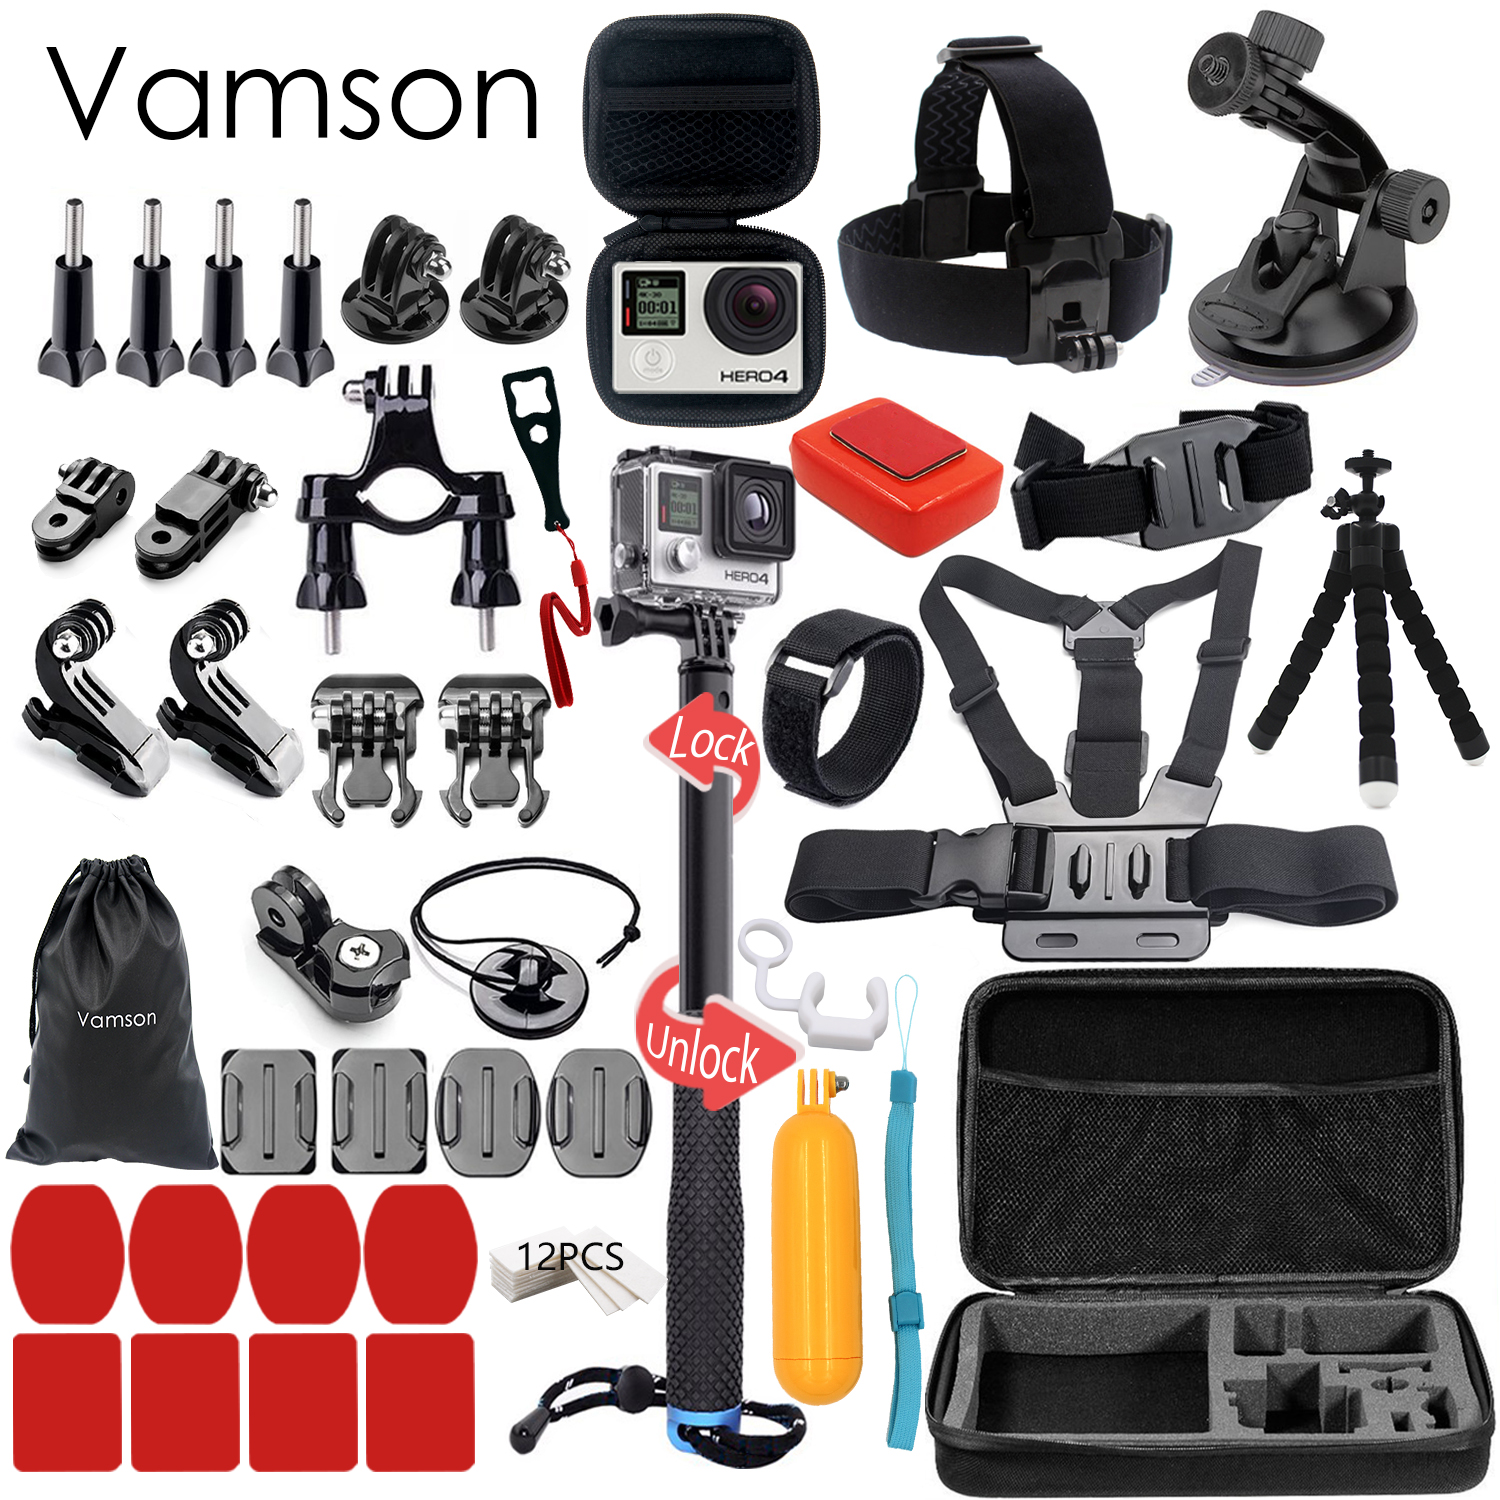 Vamson for Gopro Accessories Kit For Gopro Hero 6 5 Hero 4 Hero3 for Xiaomi for yi SJCAM SJ4000  VS88 gopro accessories head belt strap mount adjustable elastic for gopro hero 4 3 2 1 sjcam xiaomi yi camera vp202 free shipping